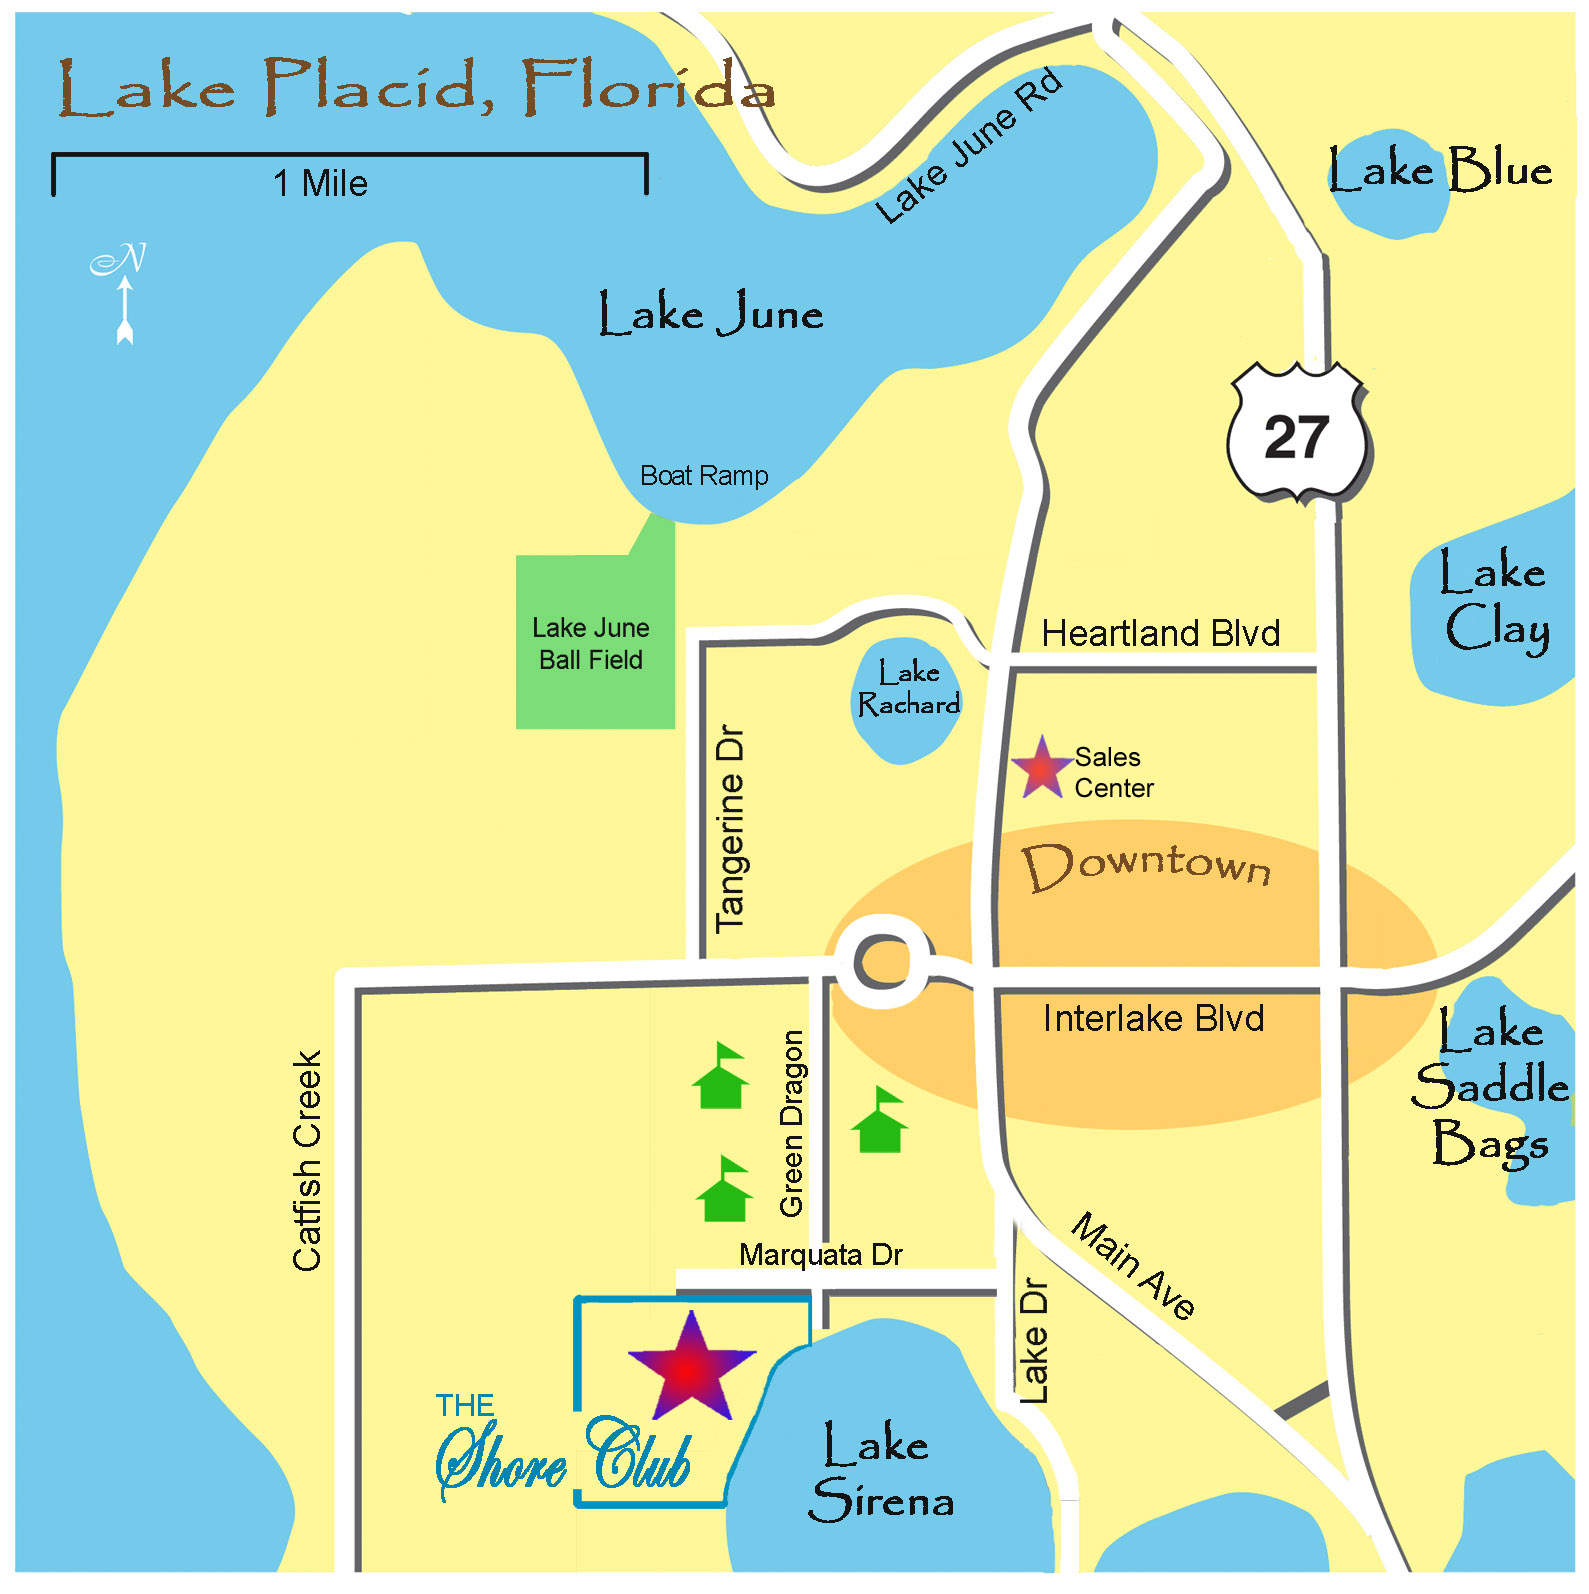 map of lake placid florida Lake Placide Town Map Lake Placid Fl Mappery map of lake placid florida